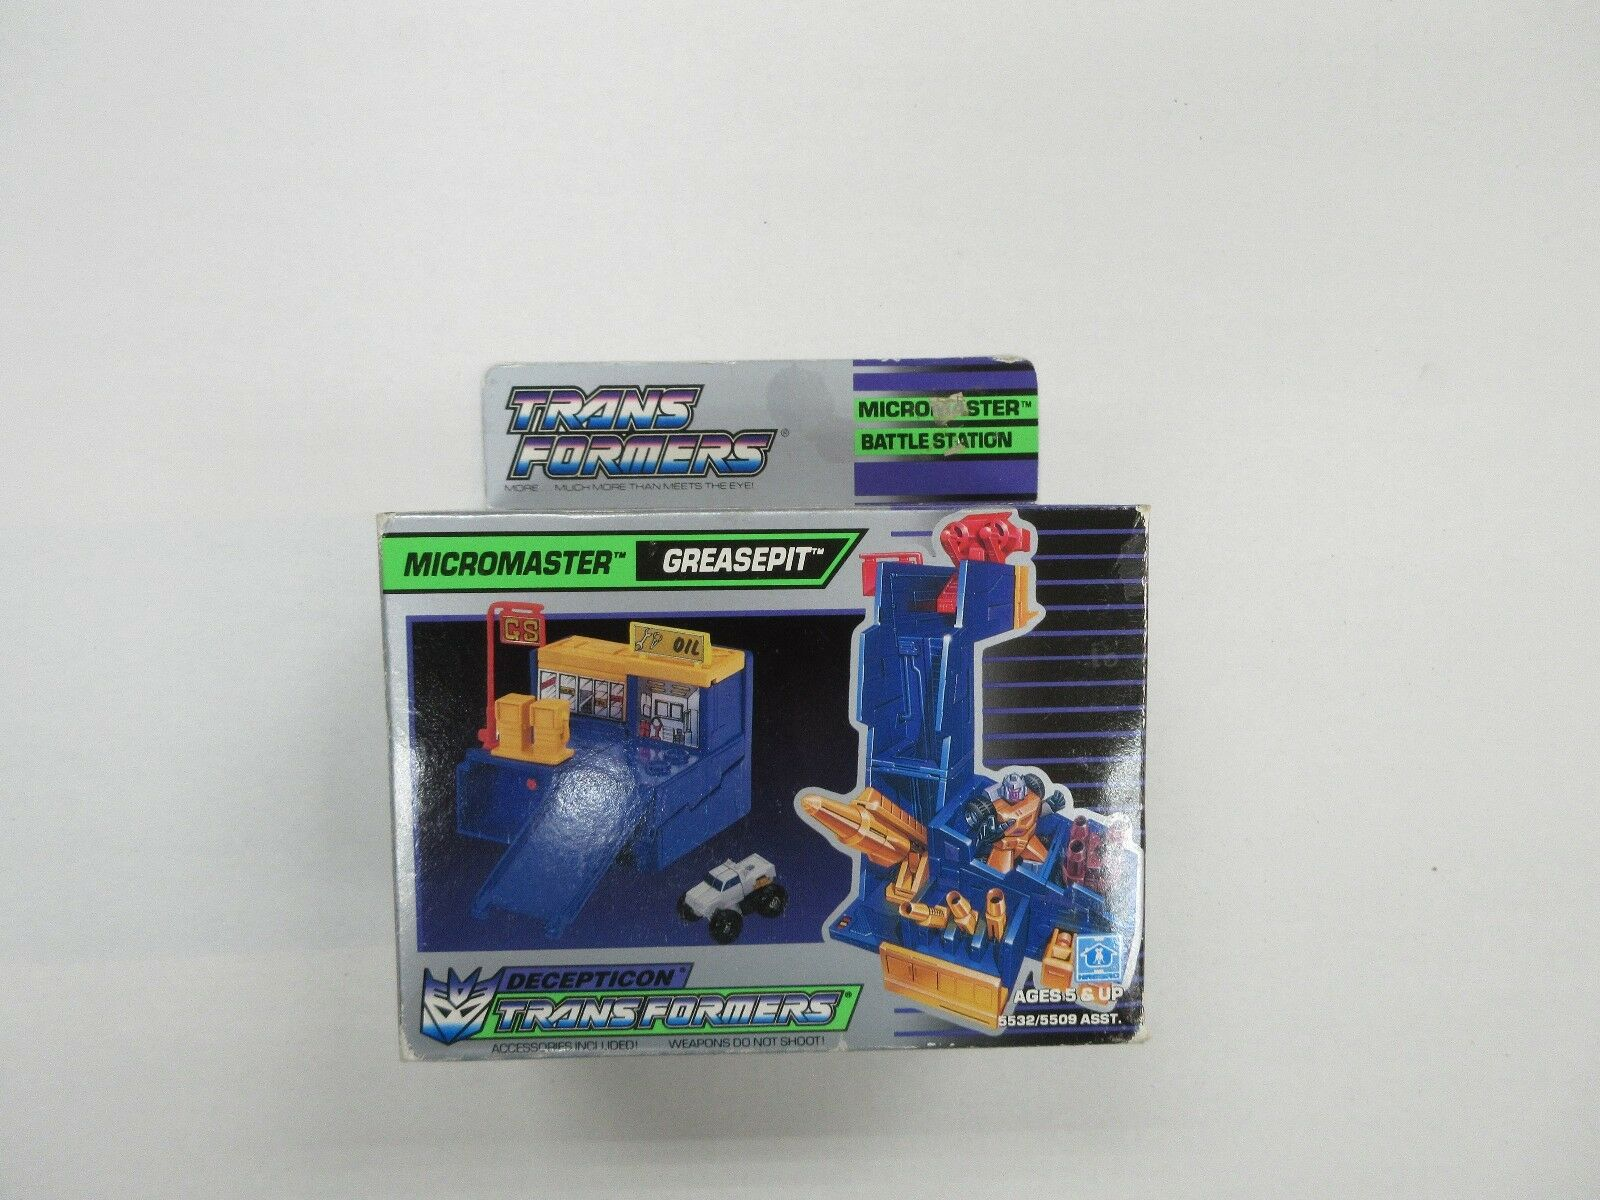 1988 G1 TRANSFORMERS MICROMASTER GREASEPIT ROBOT SET  FACTORY SEALED NIB  godendo i tuoi acquisti